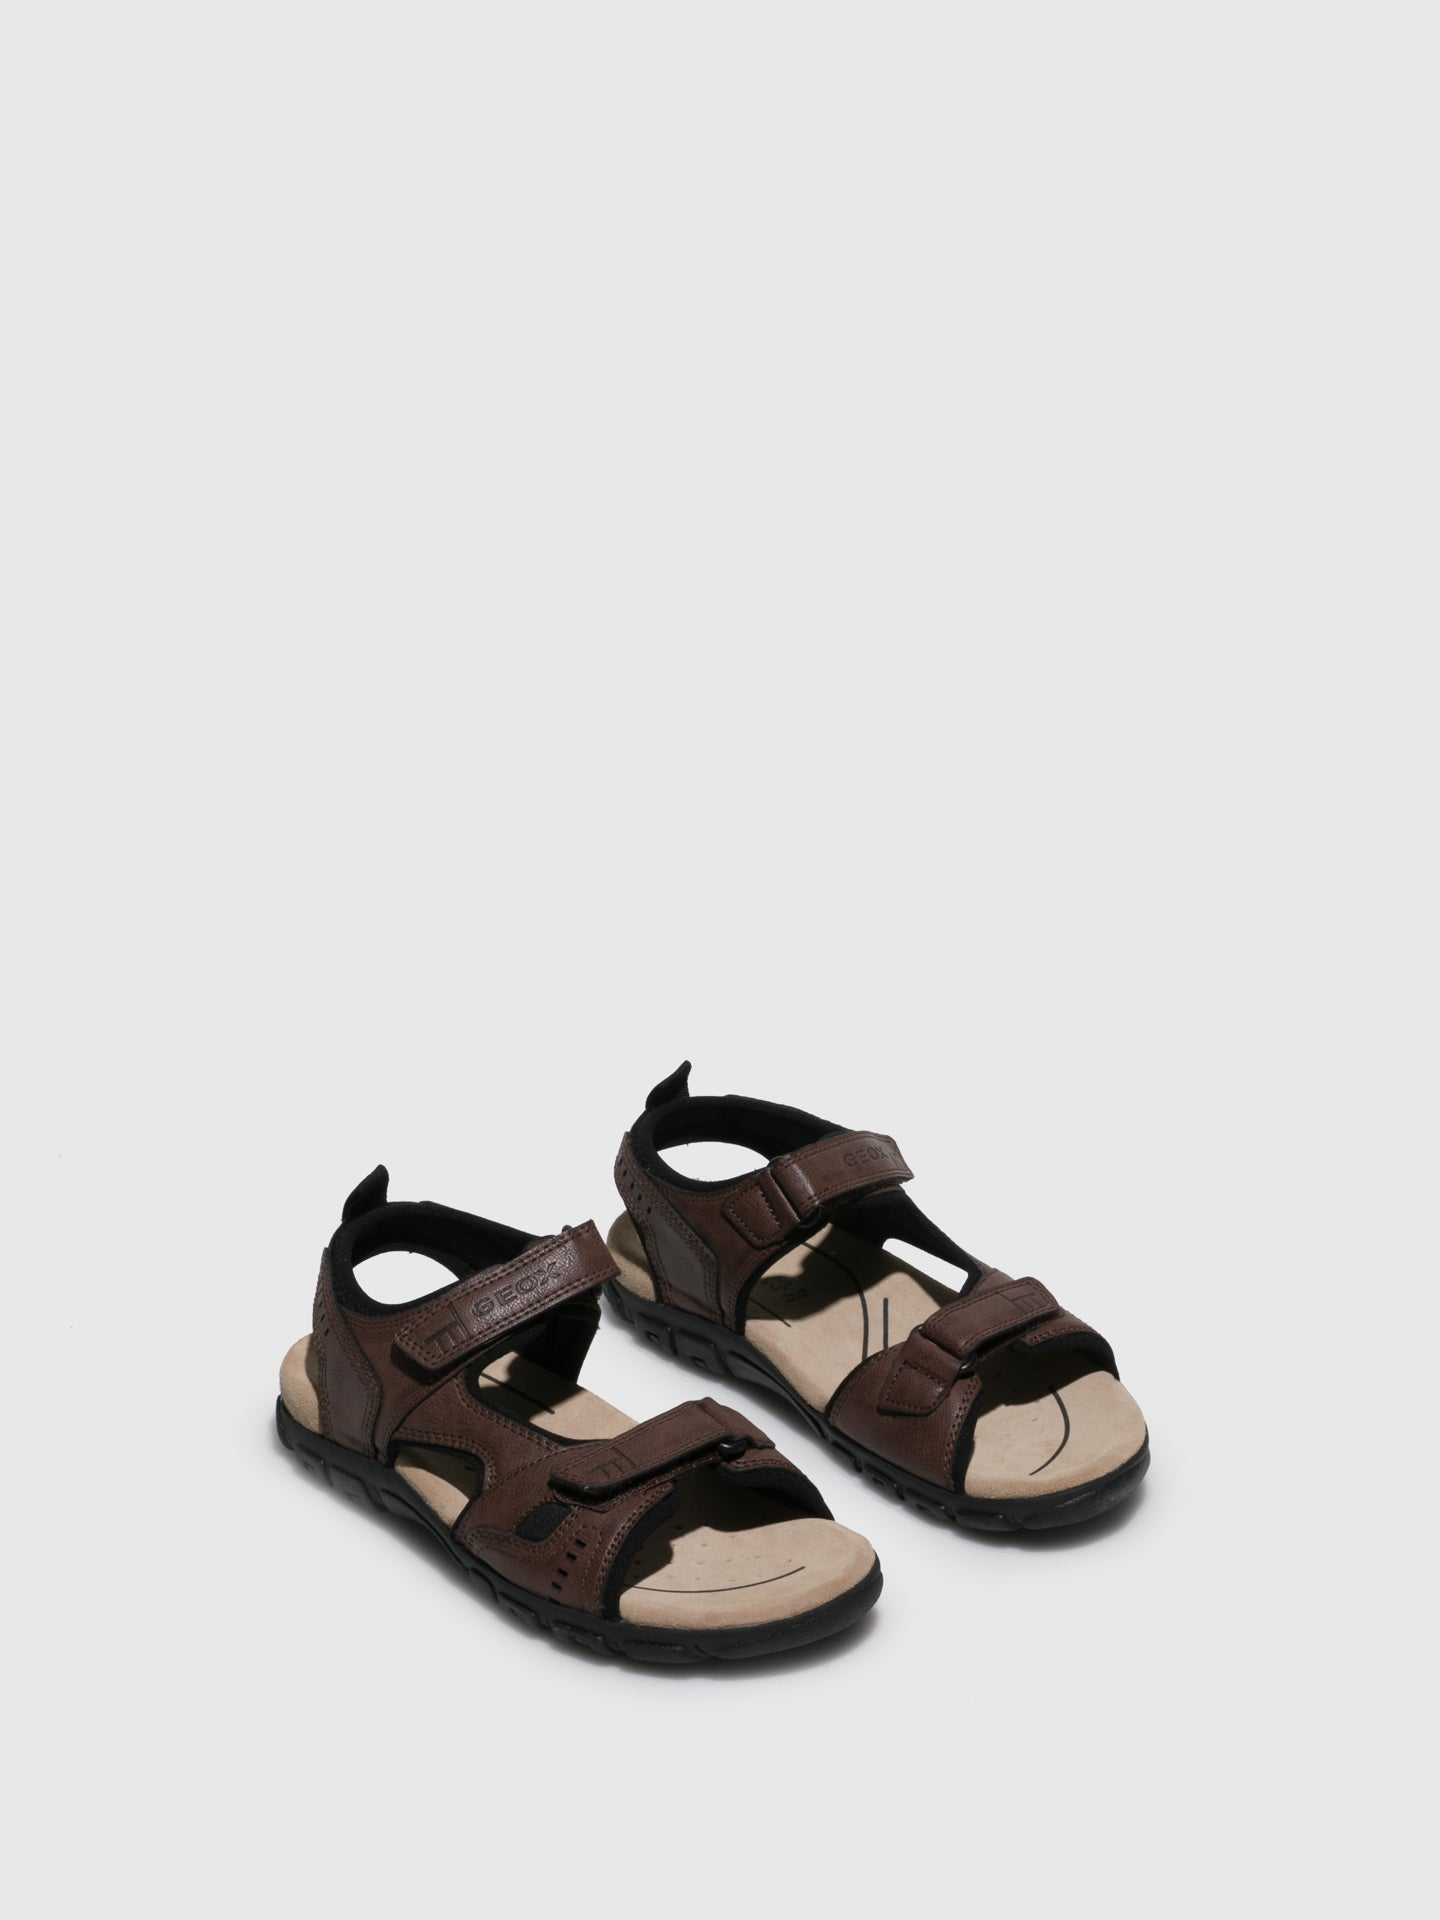 Geox SaddleBrown Crossover Sandals